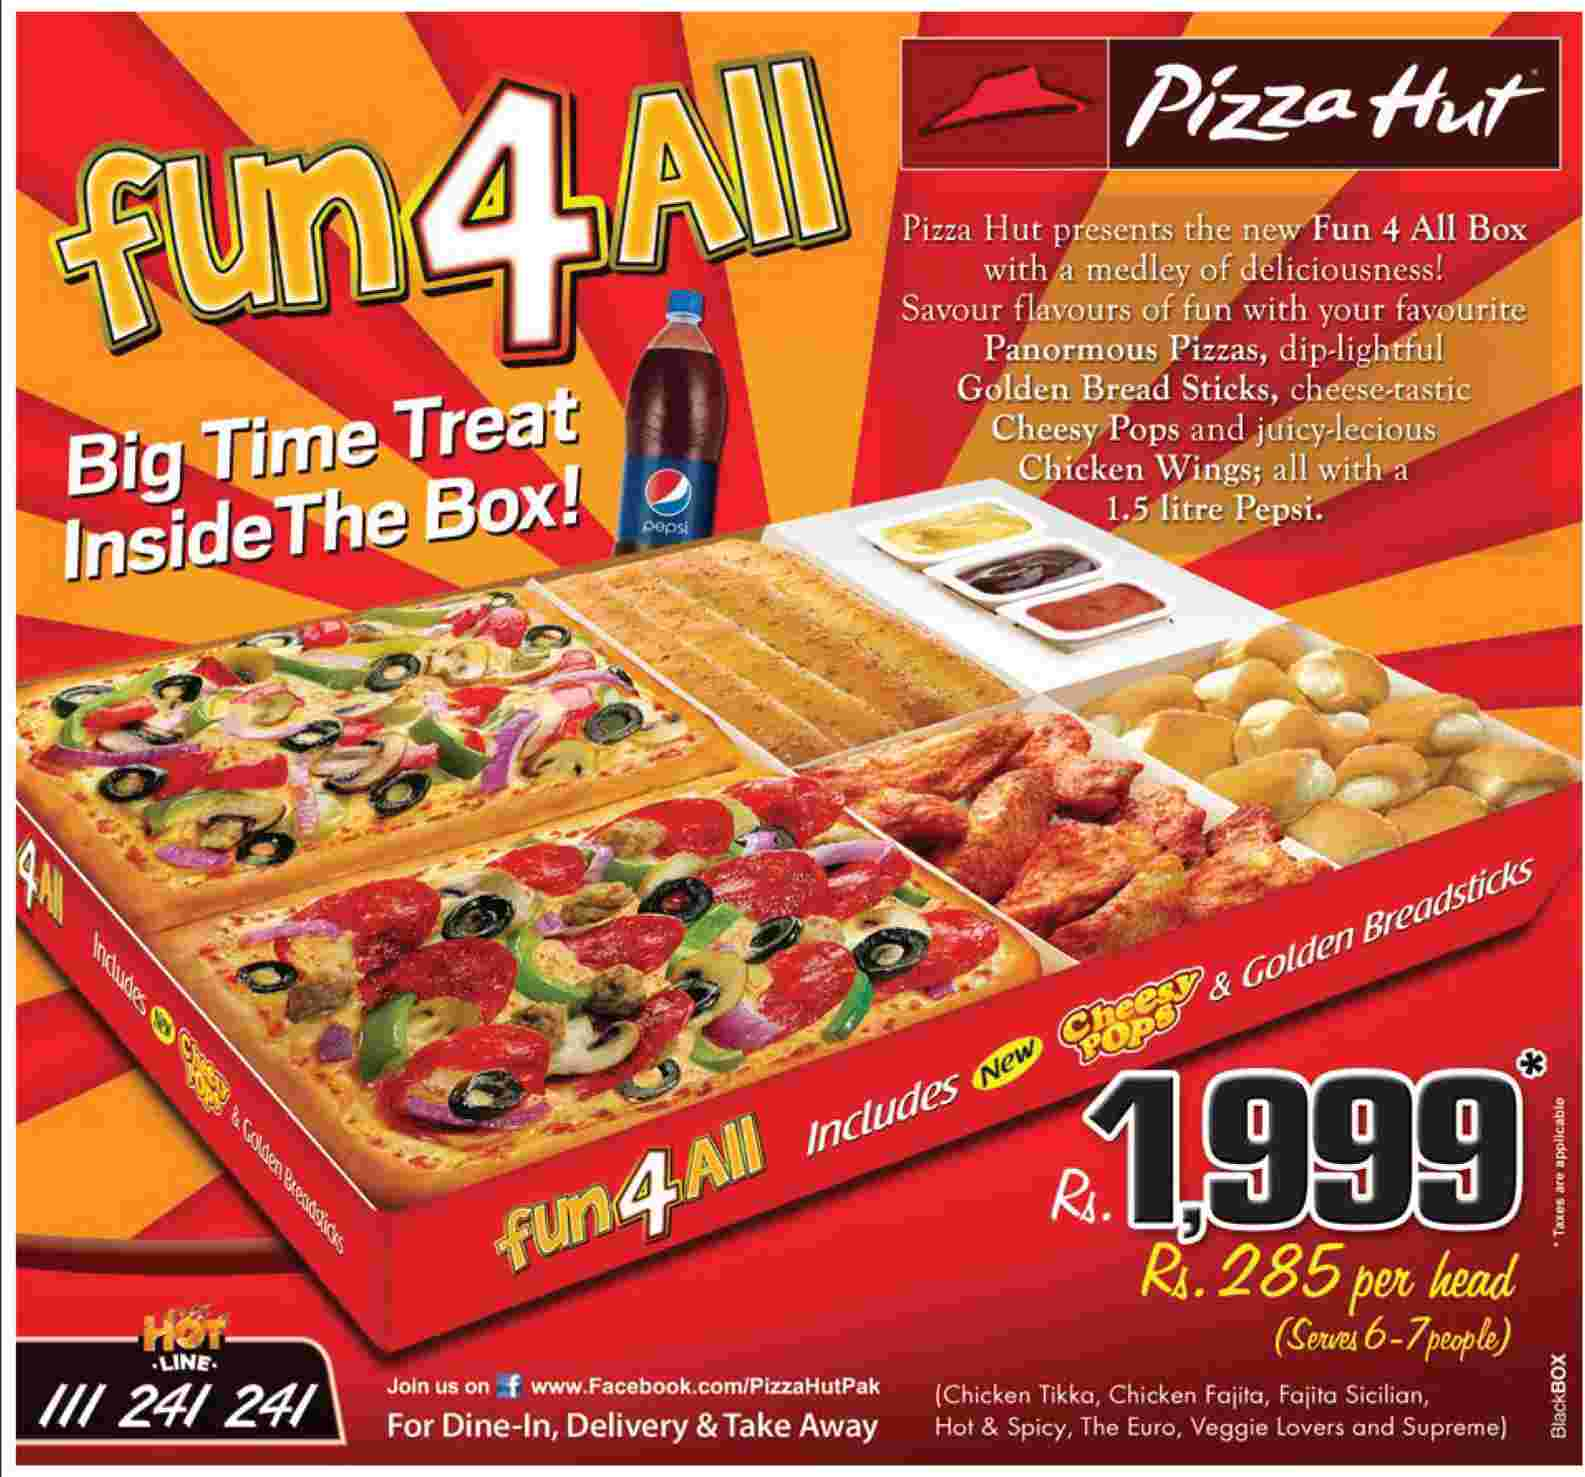 Double check the terms of the Pizza Hut voucher codes you might want to use to see if they can be combined with another offer. Often Pizza Hut Delivery can't give two sets of discounts on the same meal which means you might need to work out whether the discount codes or the deal give the best saving.